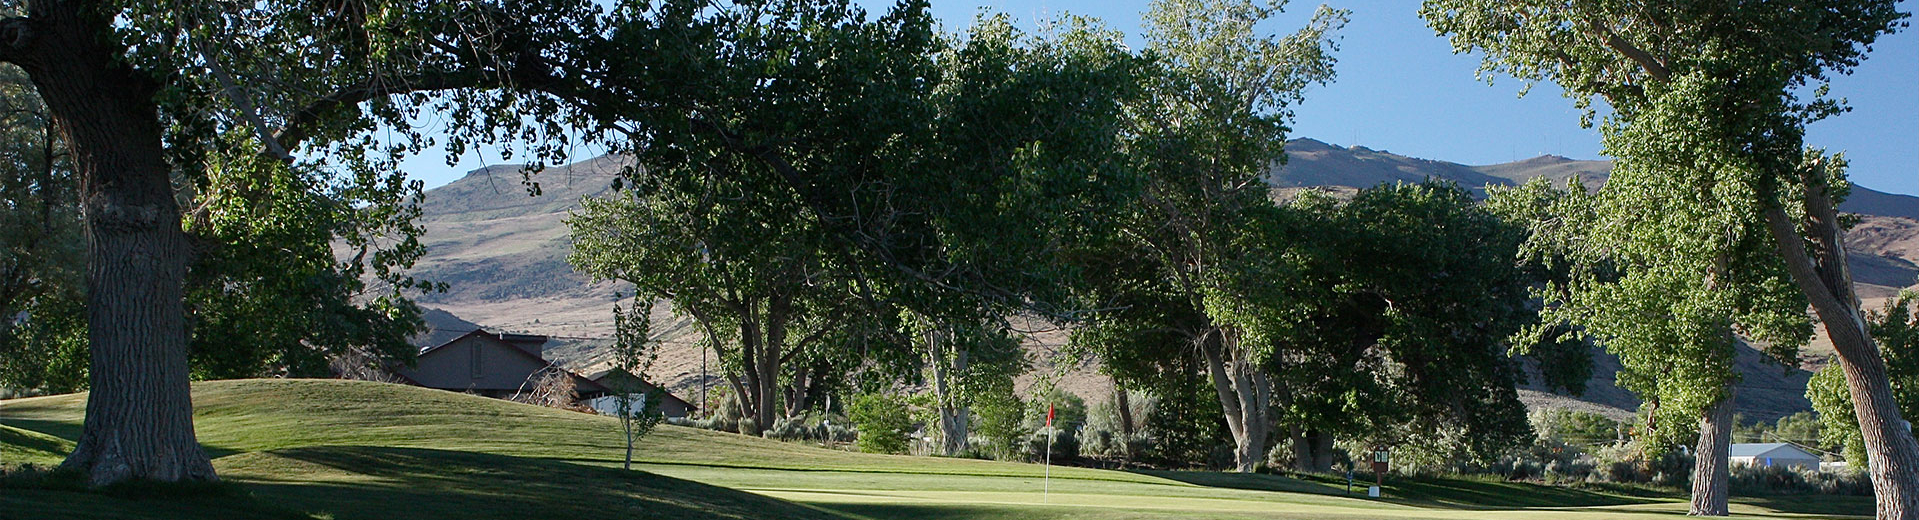 One of the holes at Empire Ranch Golf Course in Carson City, Nevada